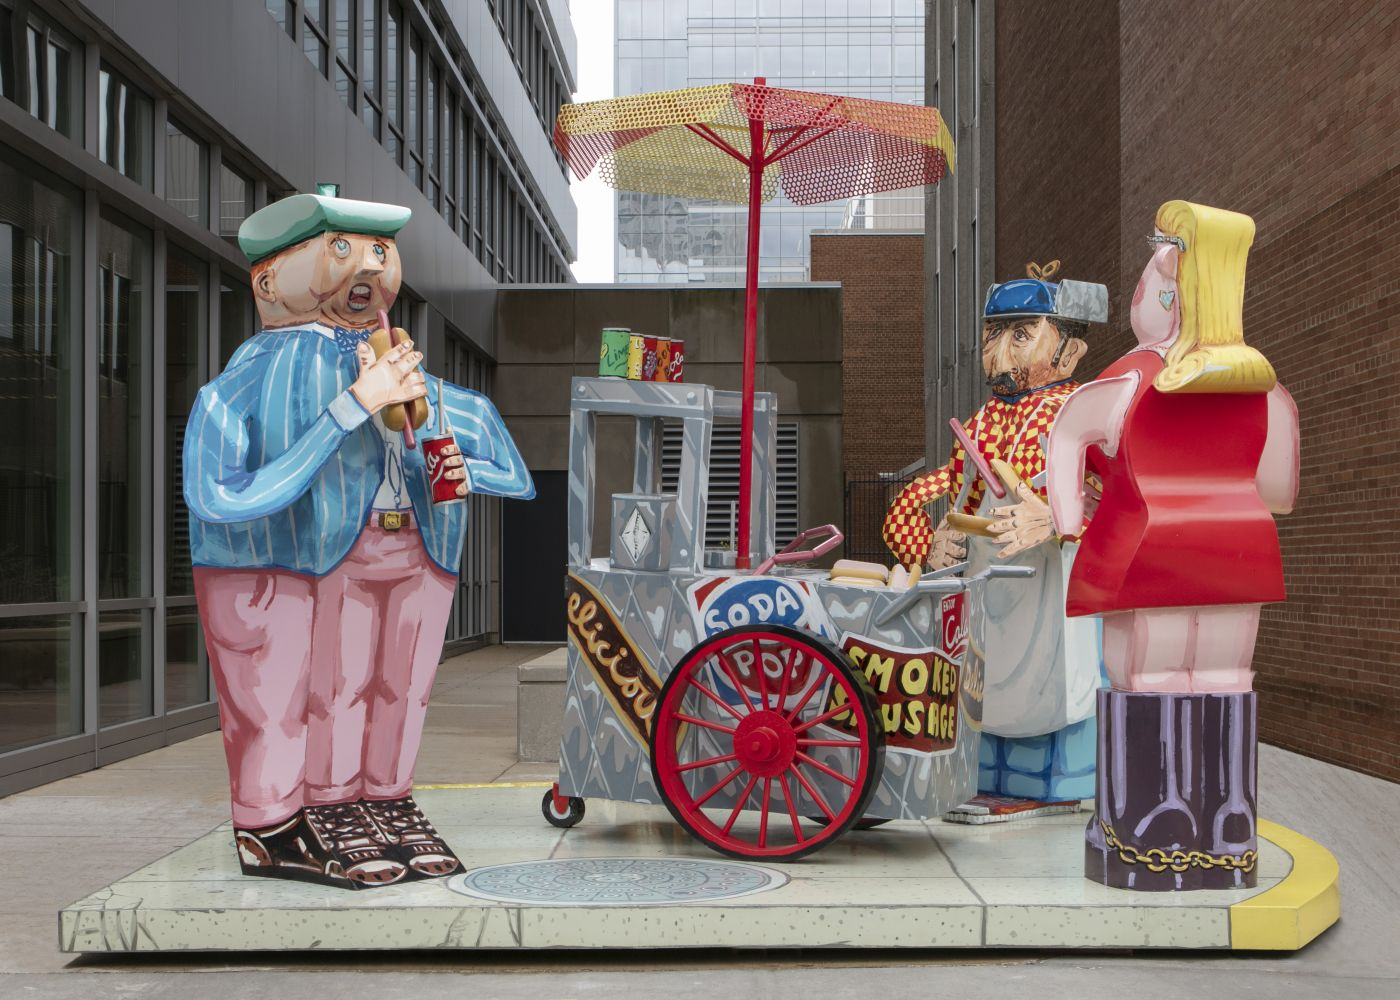 An installation shot of Red Grooms' sculpture depicting a hot dog vendor and two customers using exaggerated perspective.